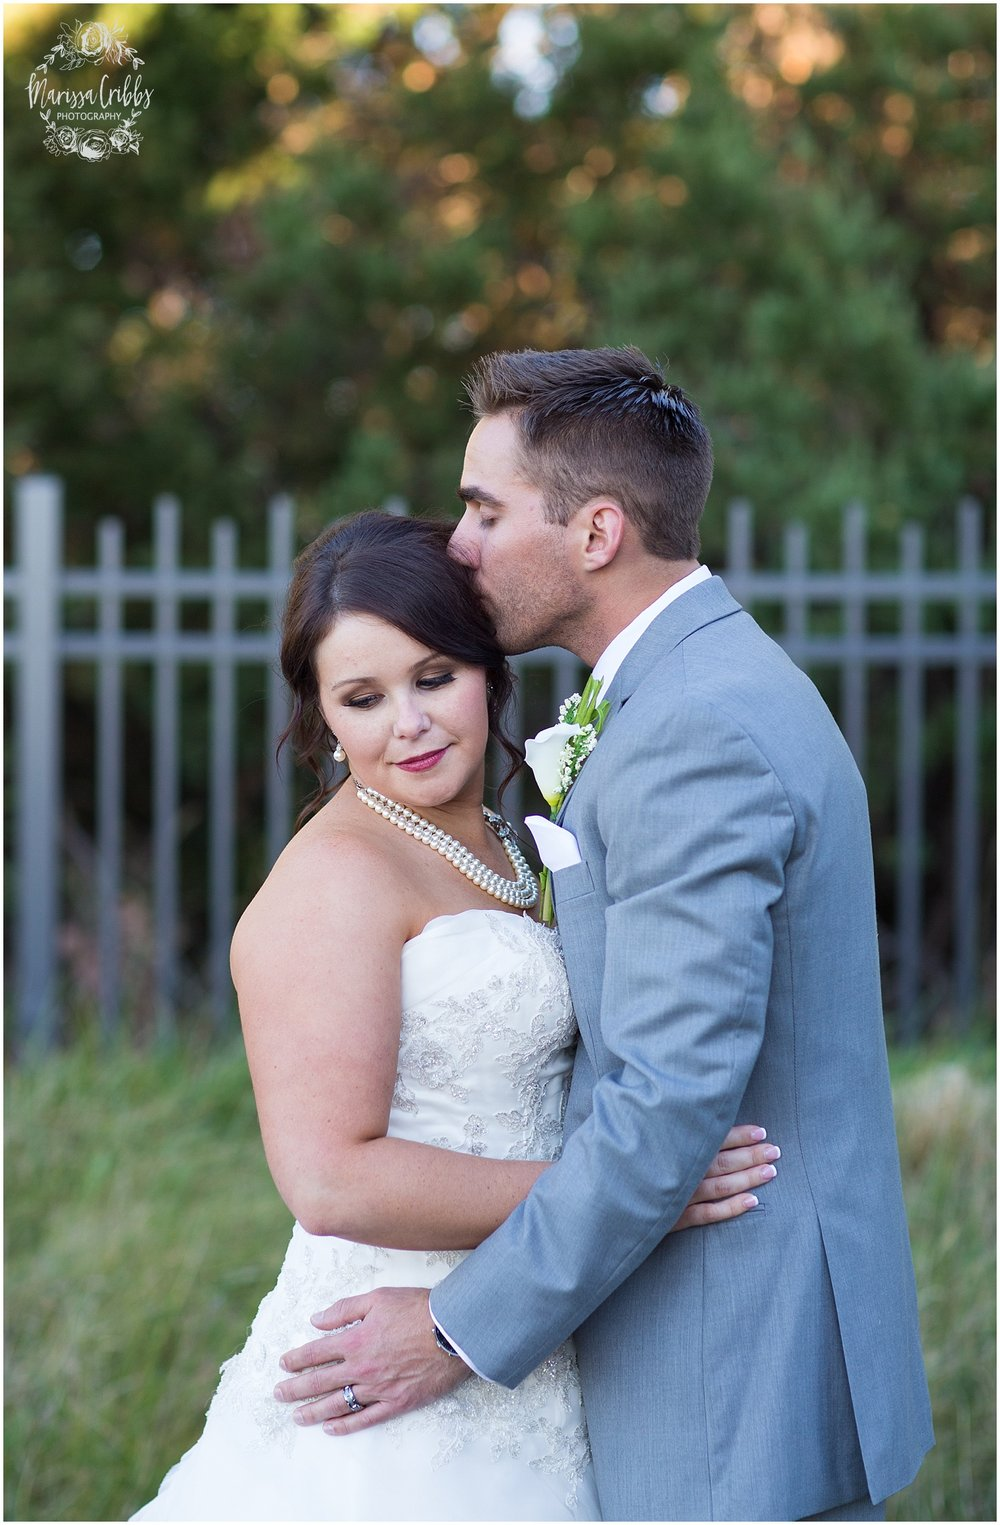 Sarah & Troy | Wichita KS Wedding Photography | Noah's Event Venue Wichita | Marissa Cribbs Photography_1018.jpg